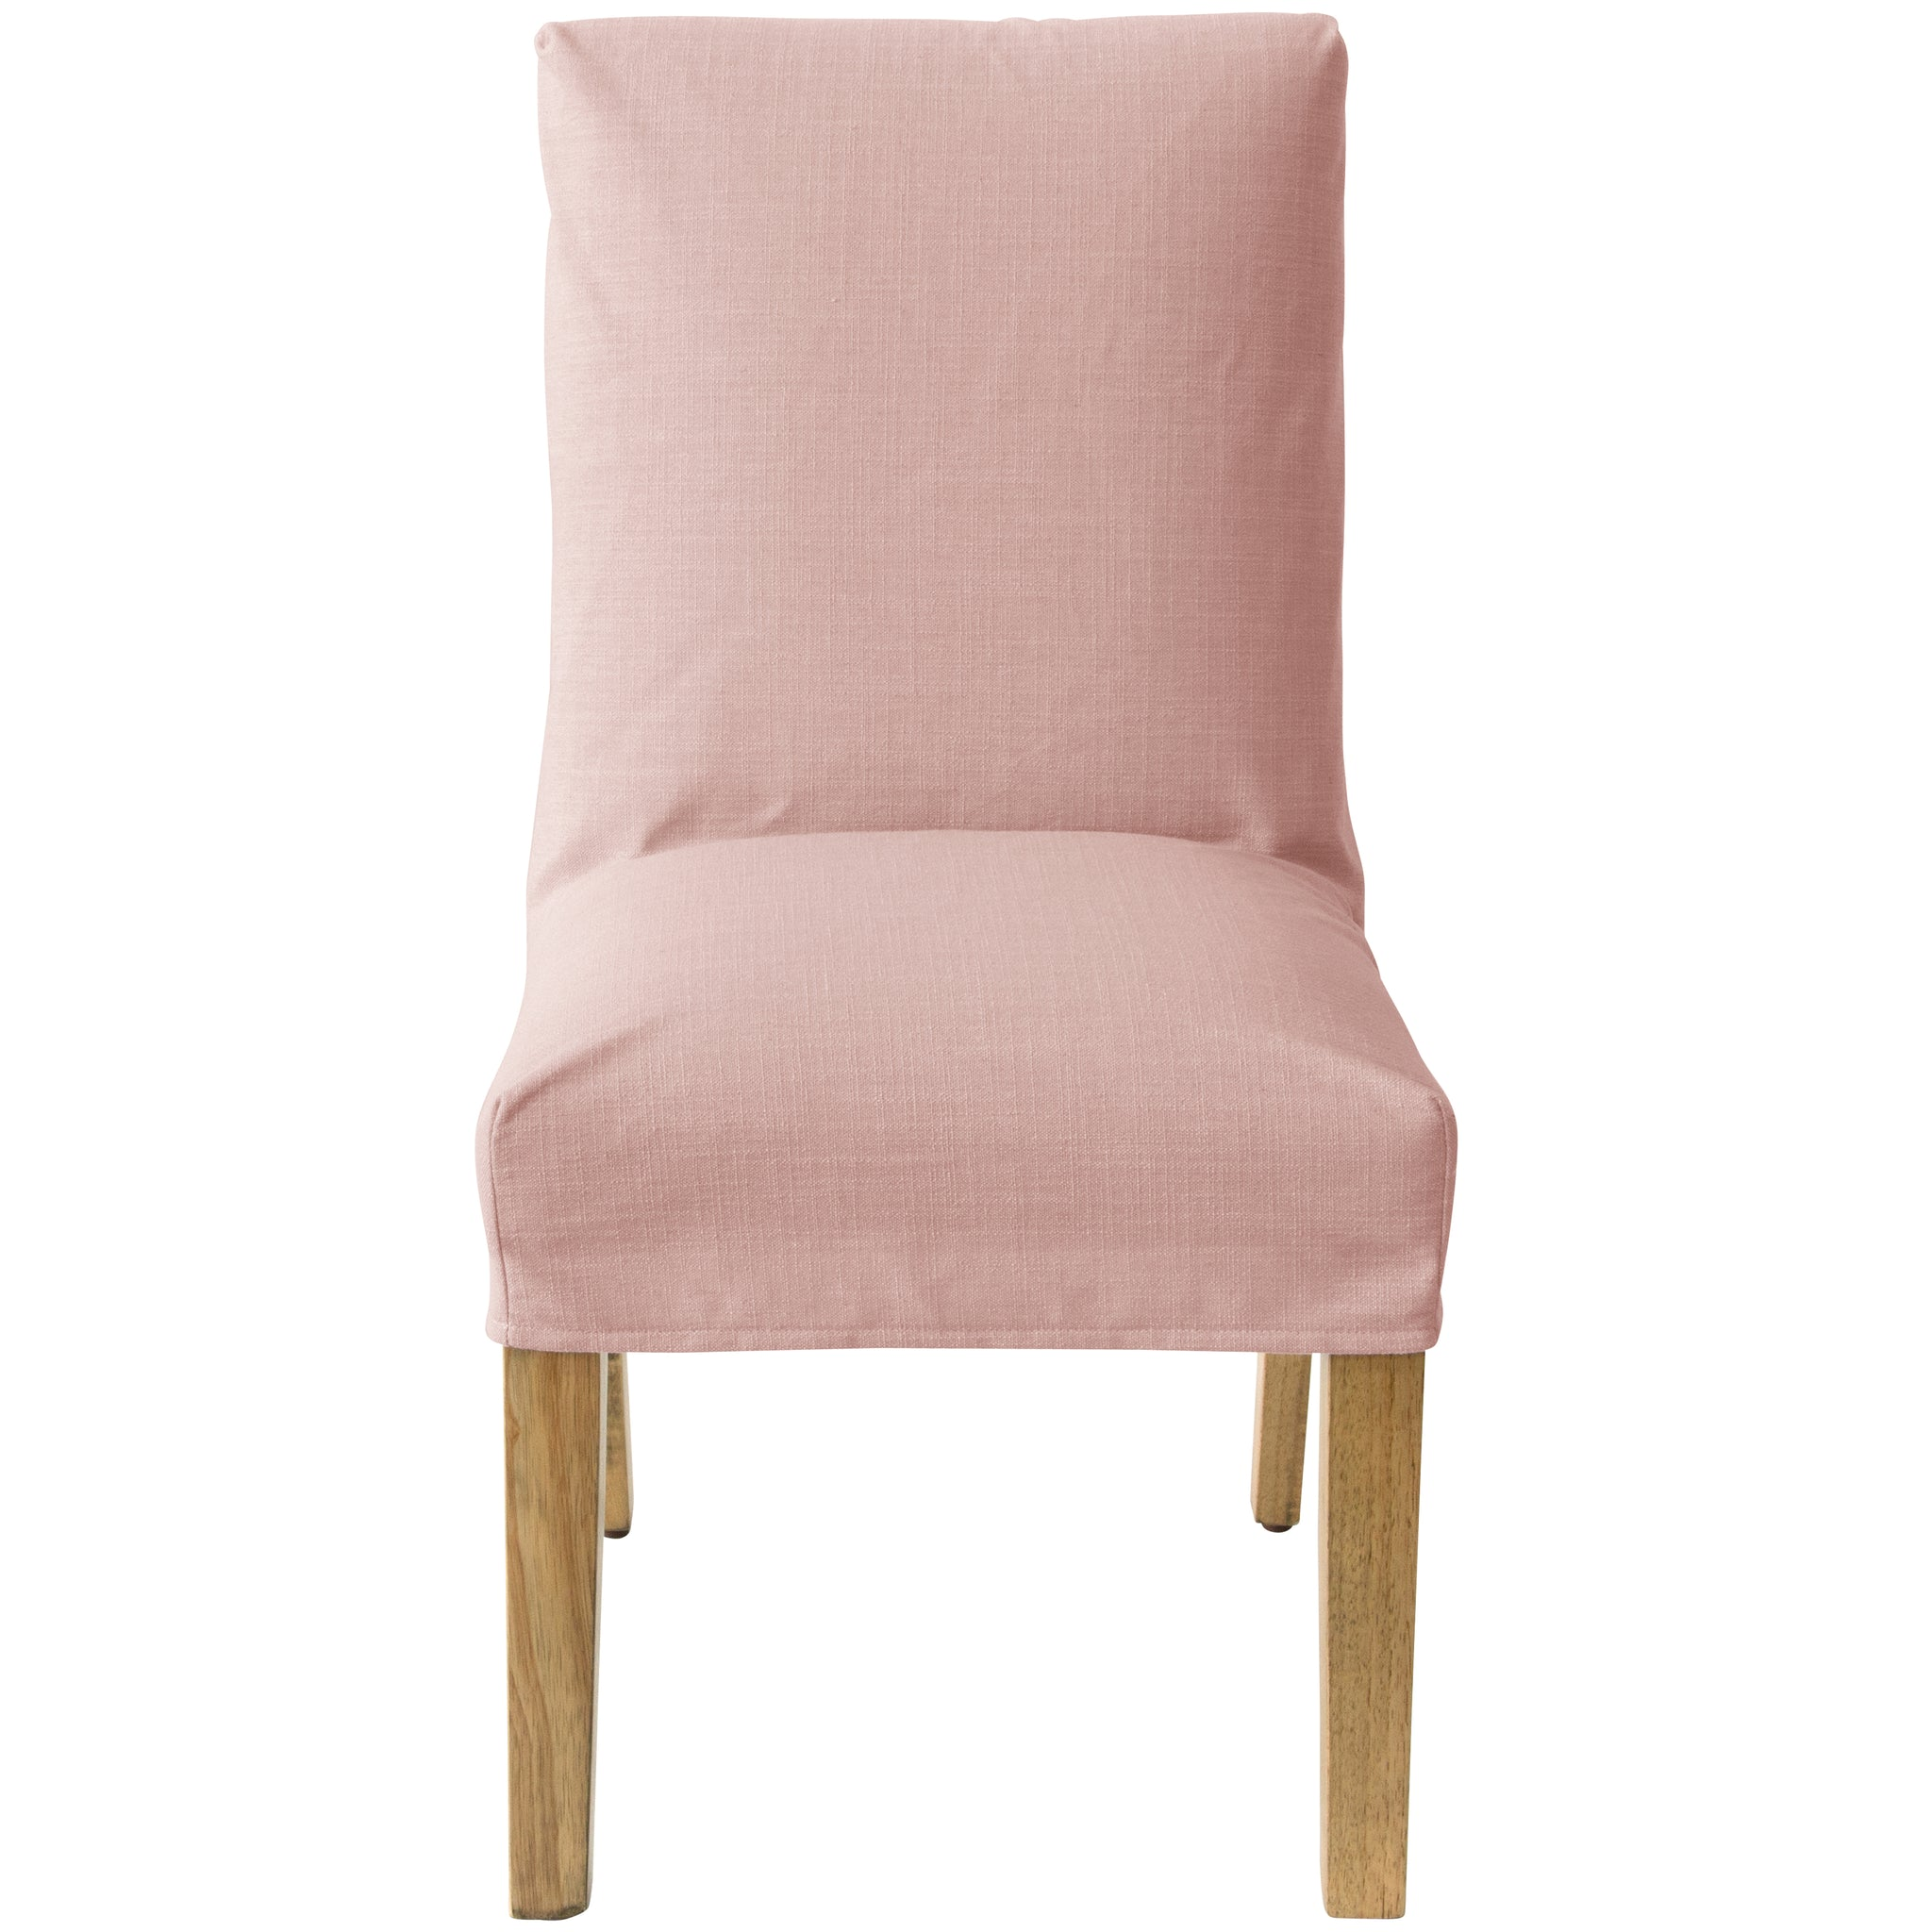 Remarkable Shabby Chic Furniture Swallow Slipcover Dining Chair More Colors Download Free Architecture Designs Scobabritishbridgeorg